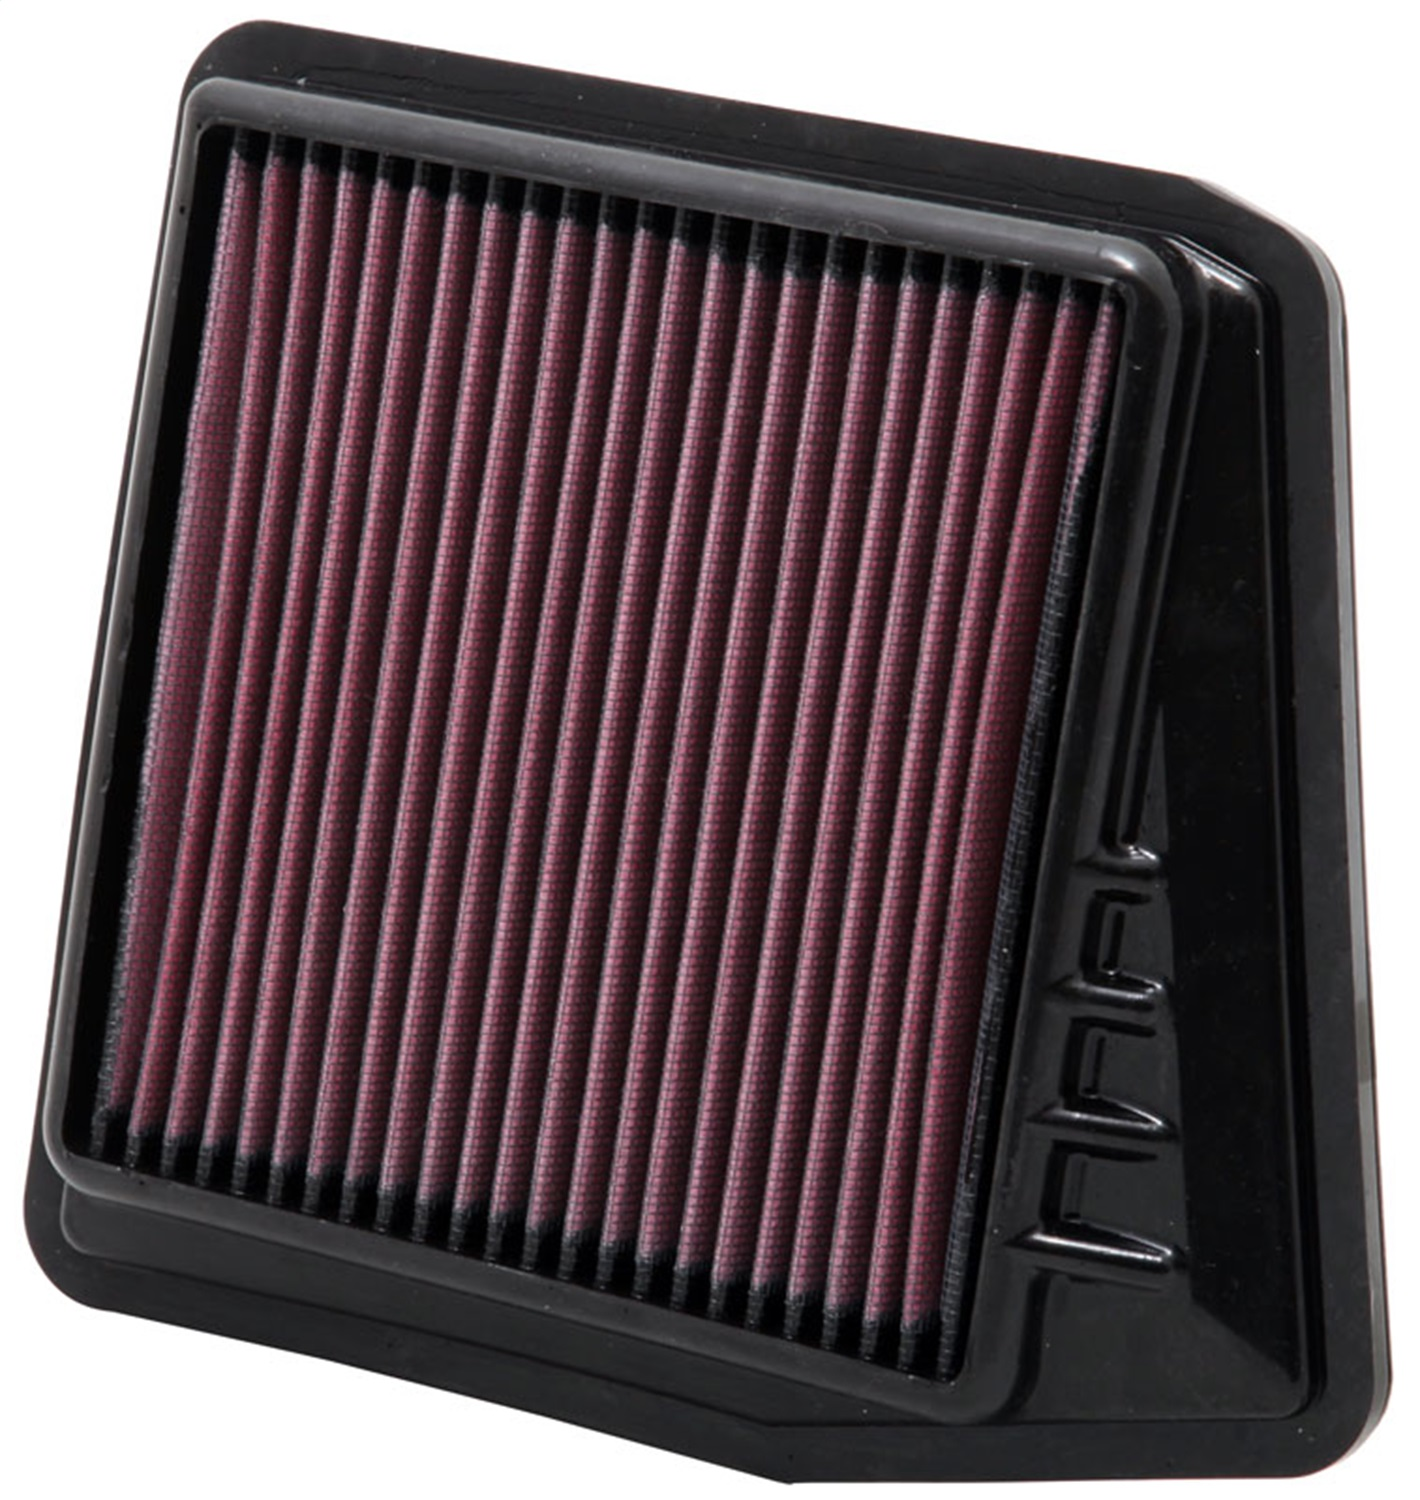 K&N Filters 33-2430 Air Filter Fits 09-13 TSX 33-2430